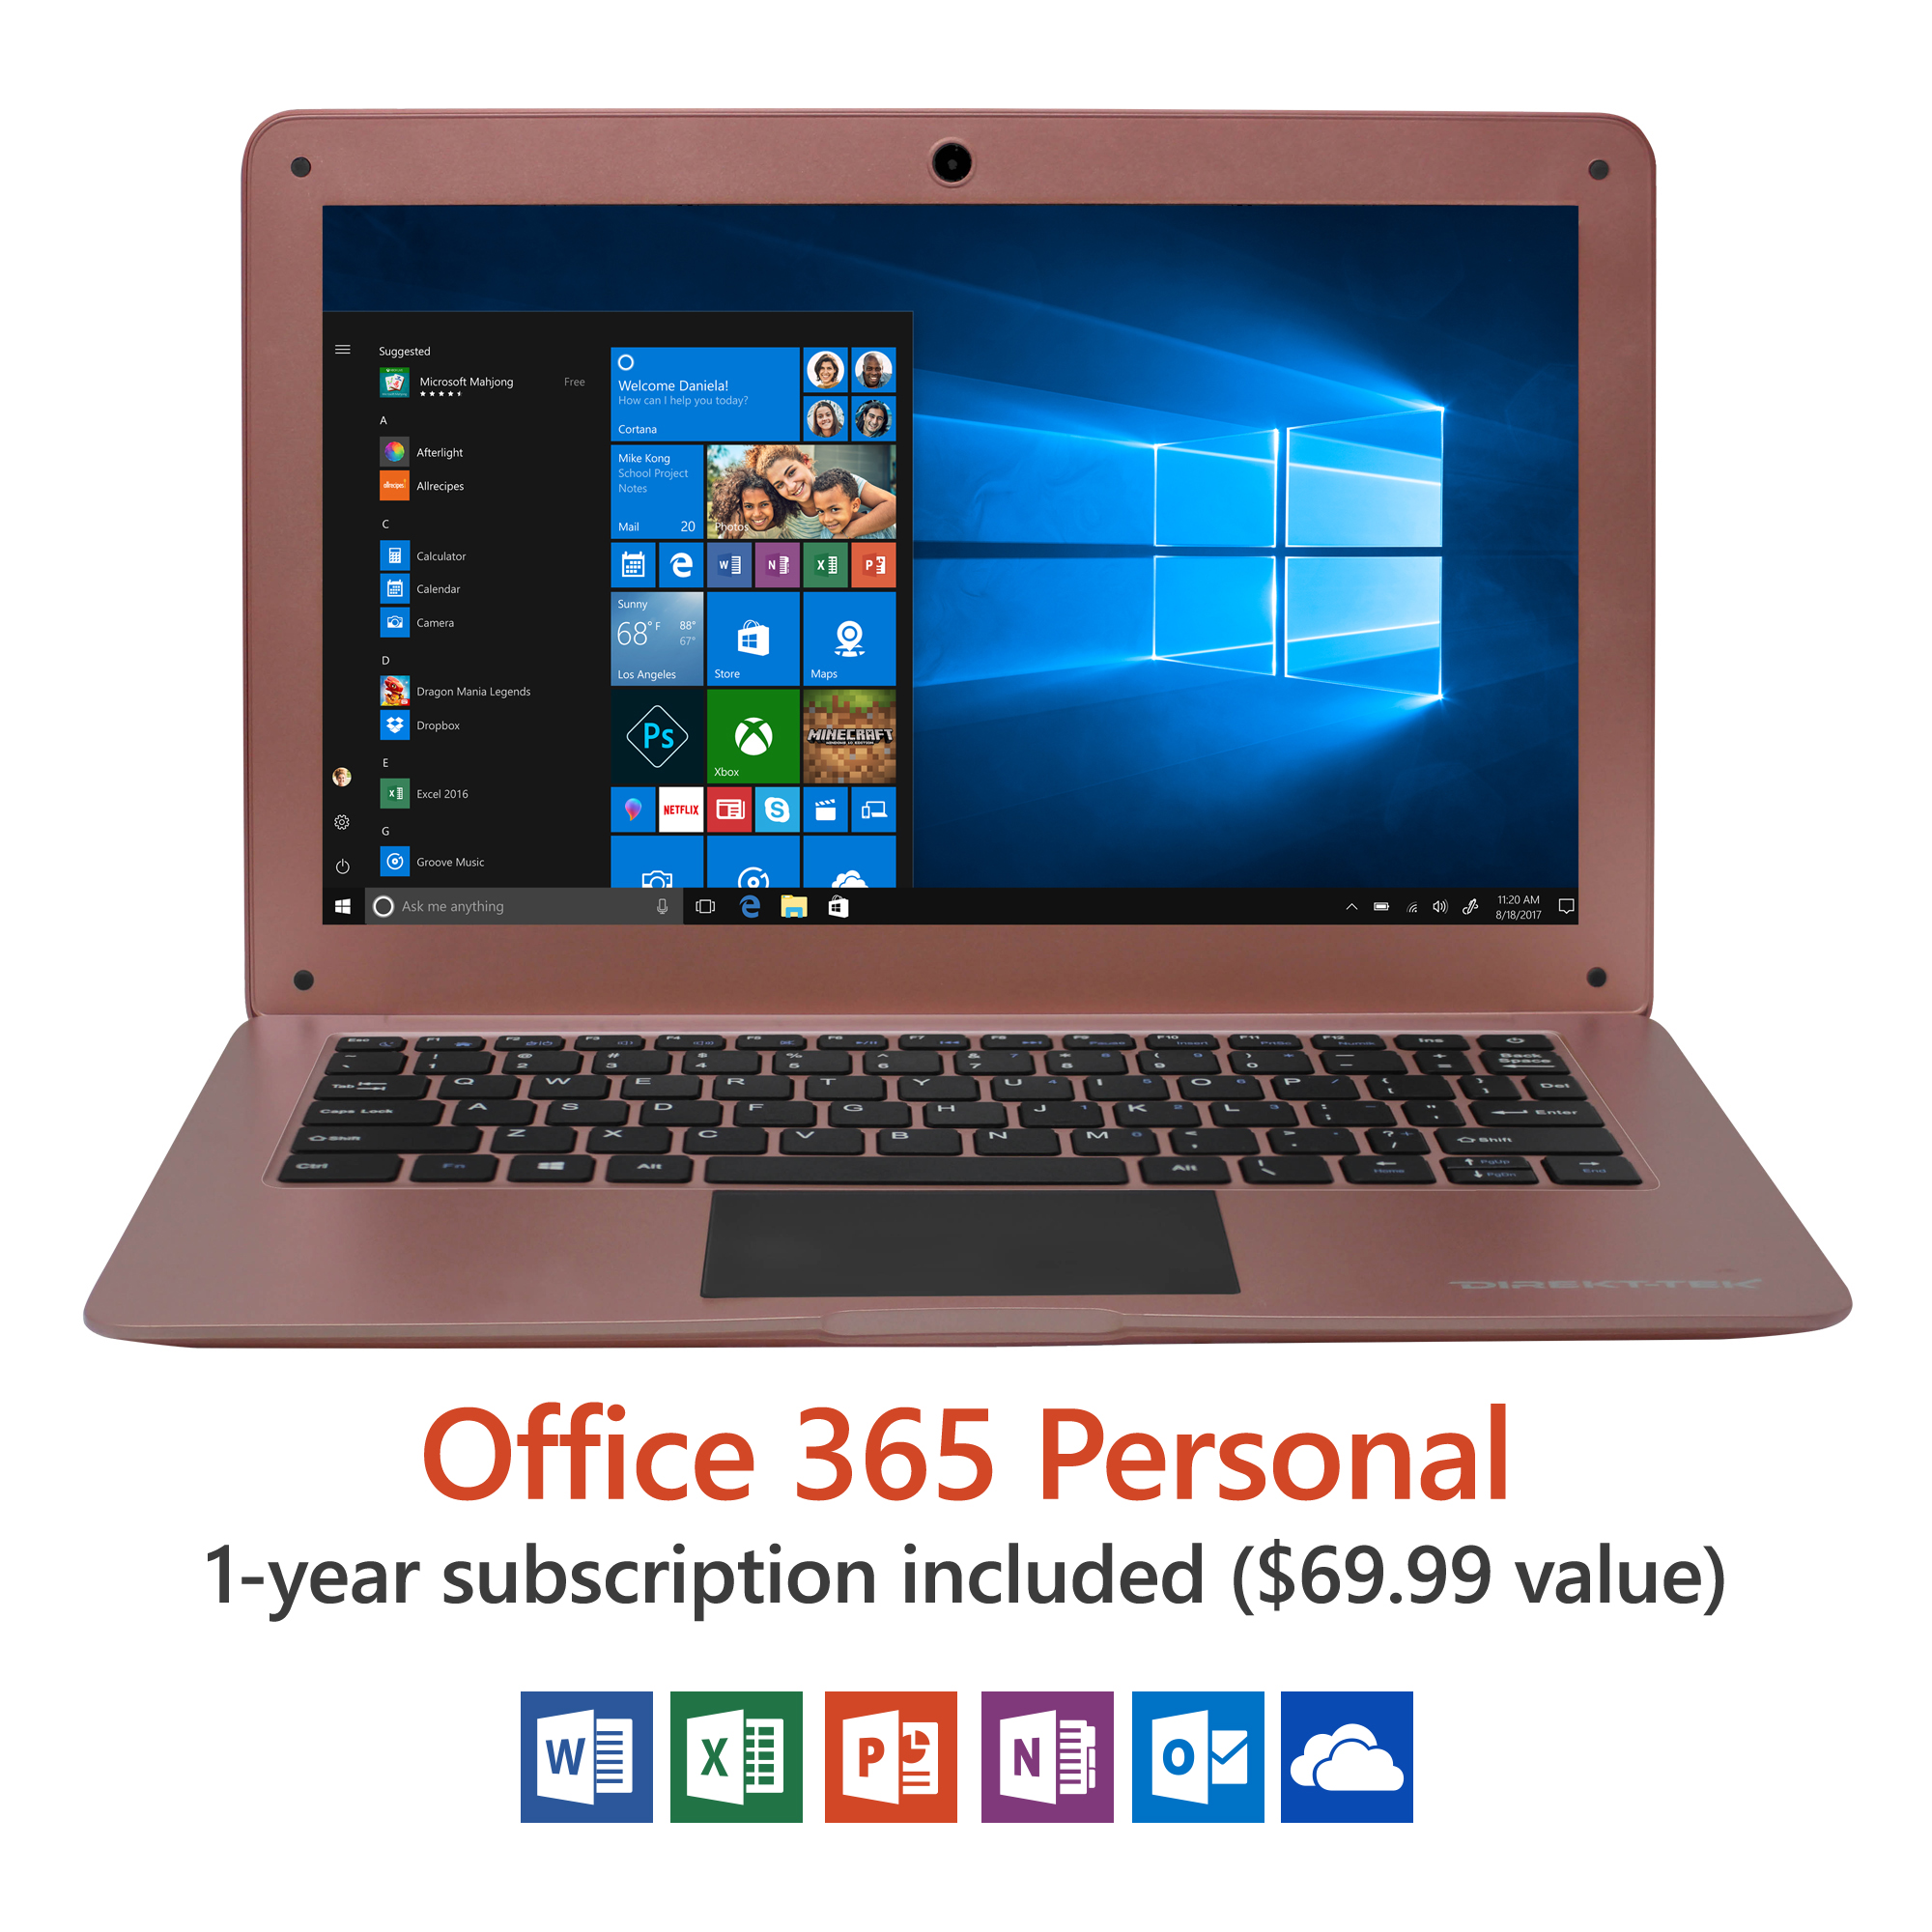 "14"" Ultra Slim Laptop, Windows 10 Home, Office 365 Personal 1-Year Subscription Included ($69.99 Value),... by Direkt-Tek"